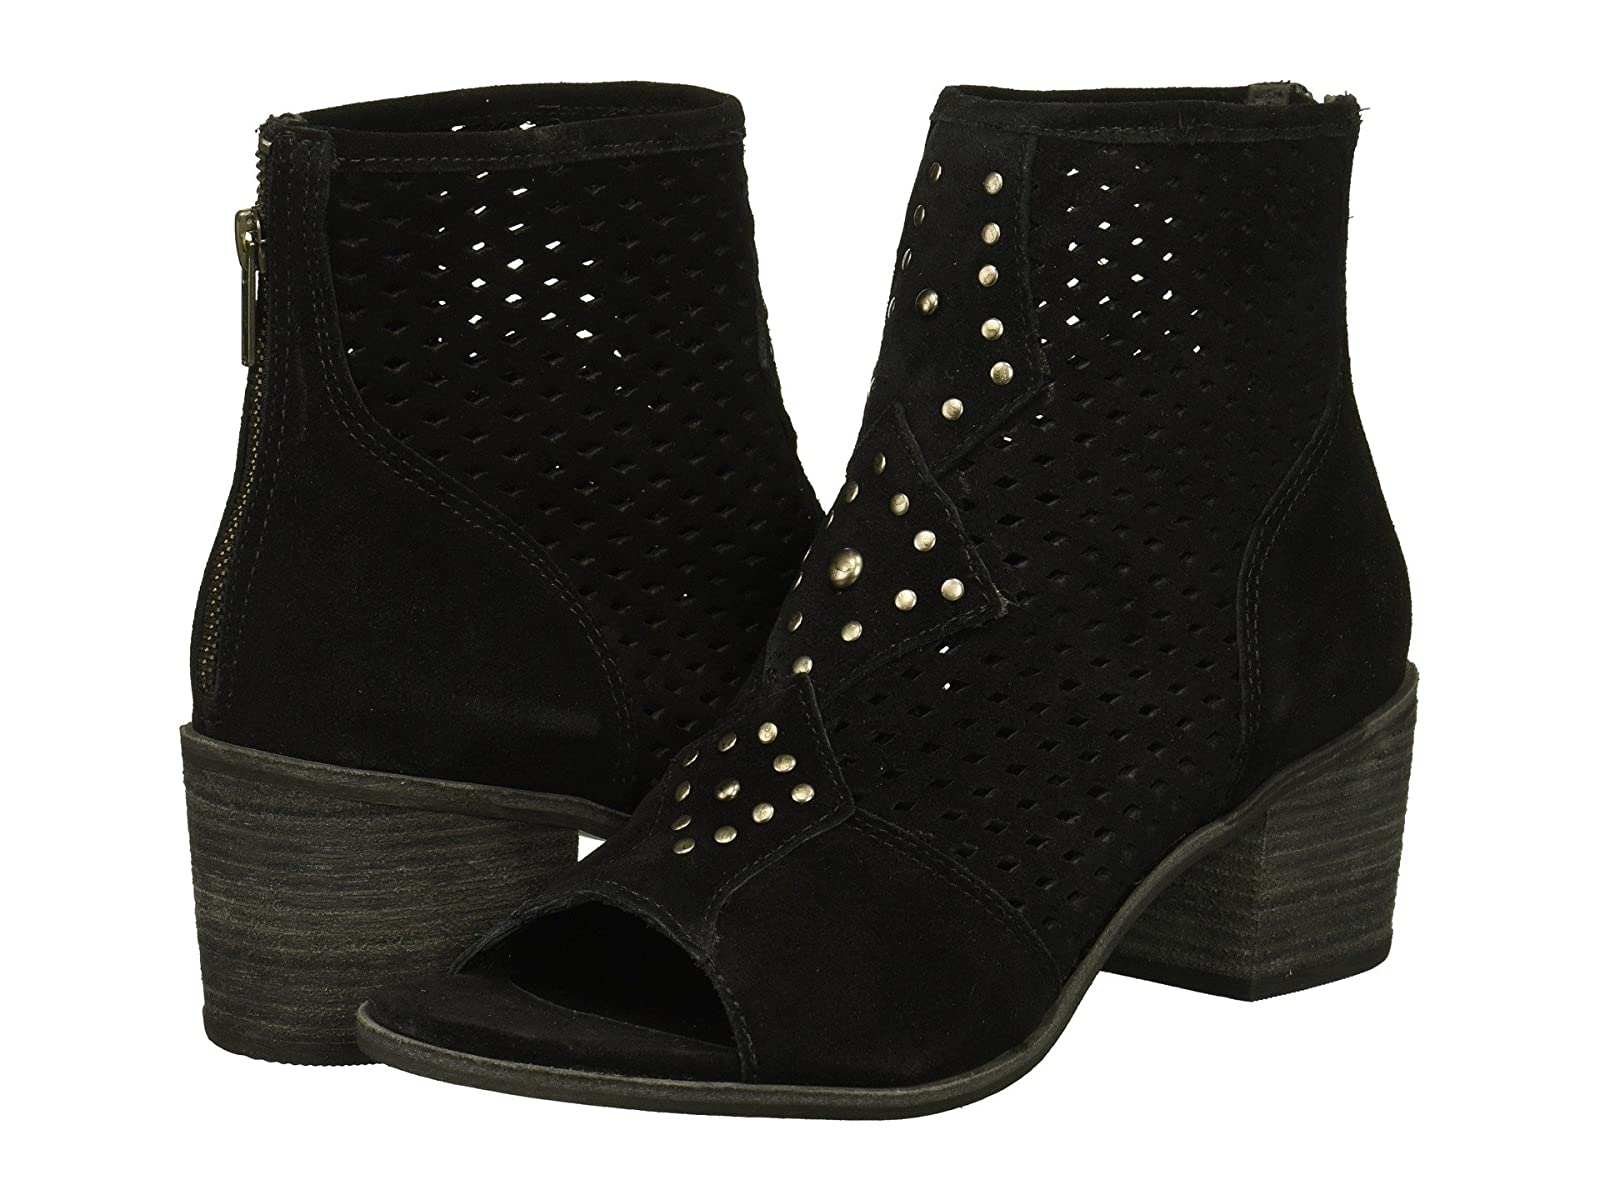 Matisse BrooklynCheap and distinctive eye-catching shoes